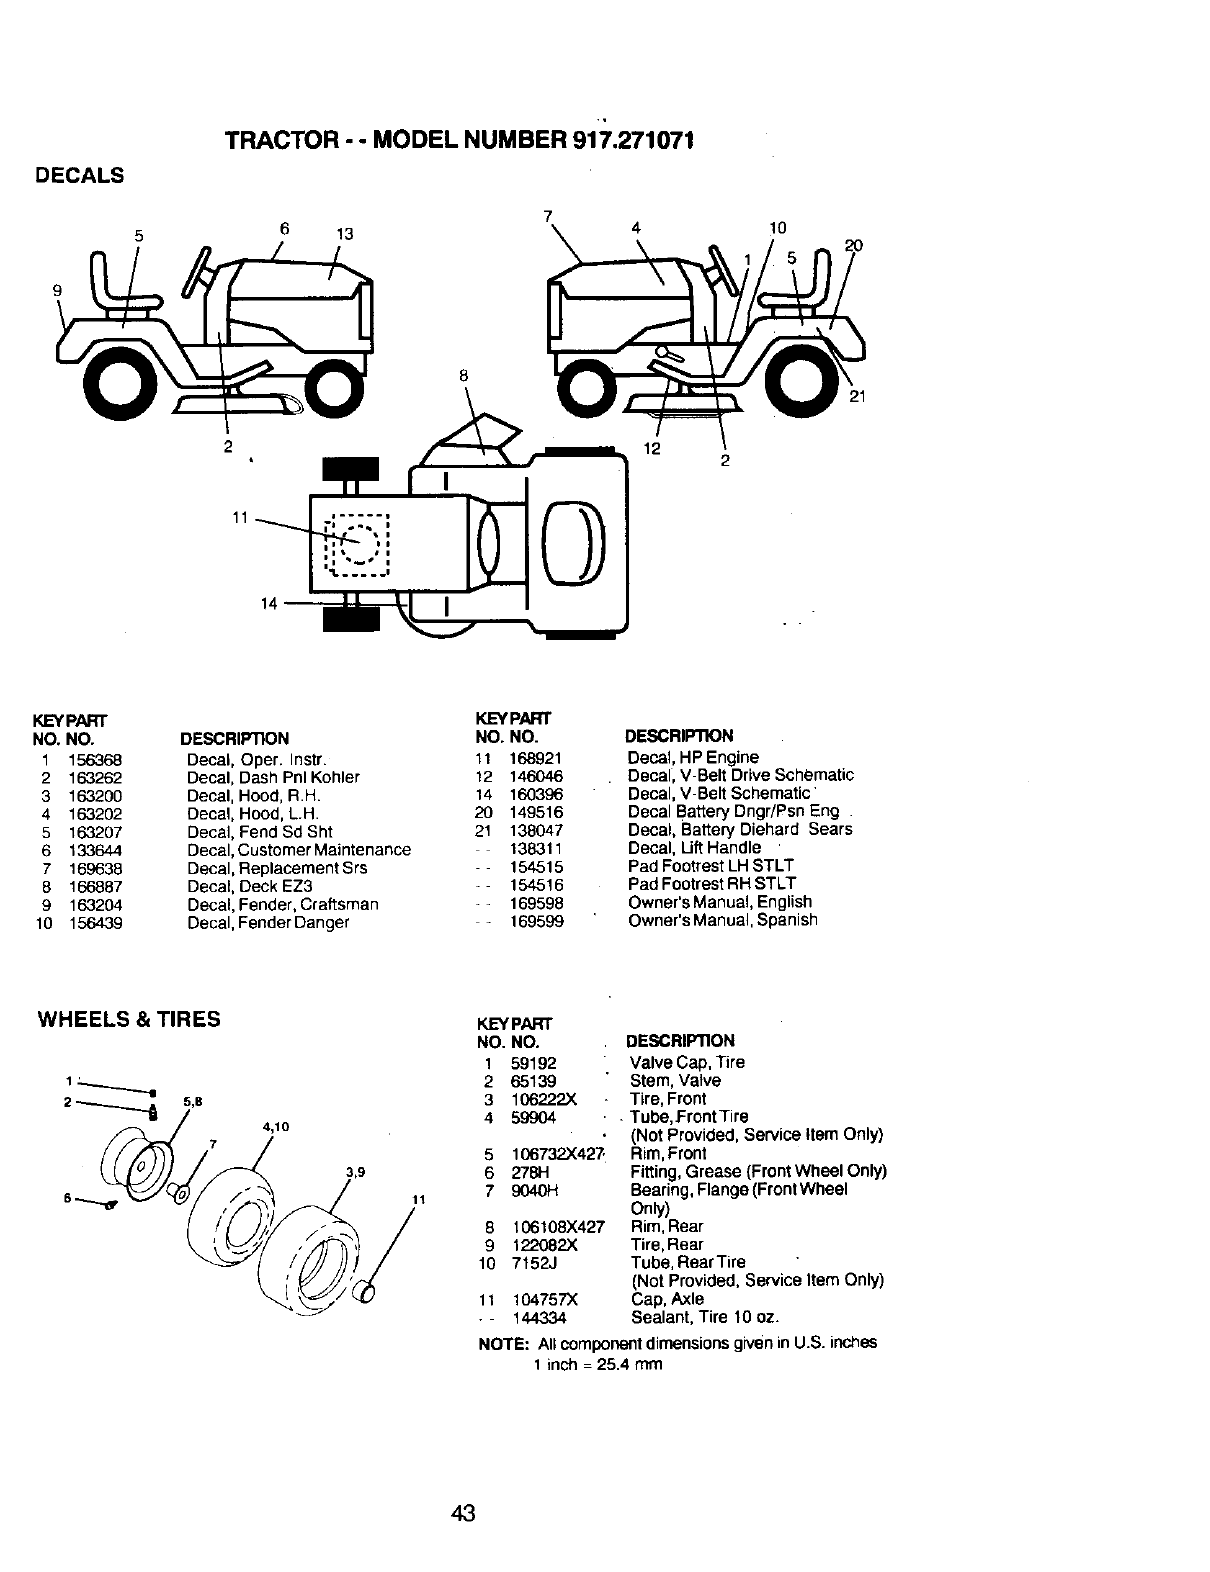 1 2 Hp Murray Riding Mower Wiring Diagram Schematic Diagrams Rider For 917 271071 Craftsman Circuit U2022 Lawn Key Switch